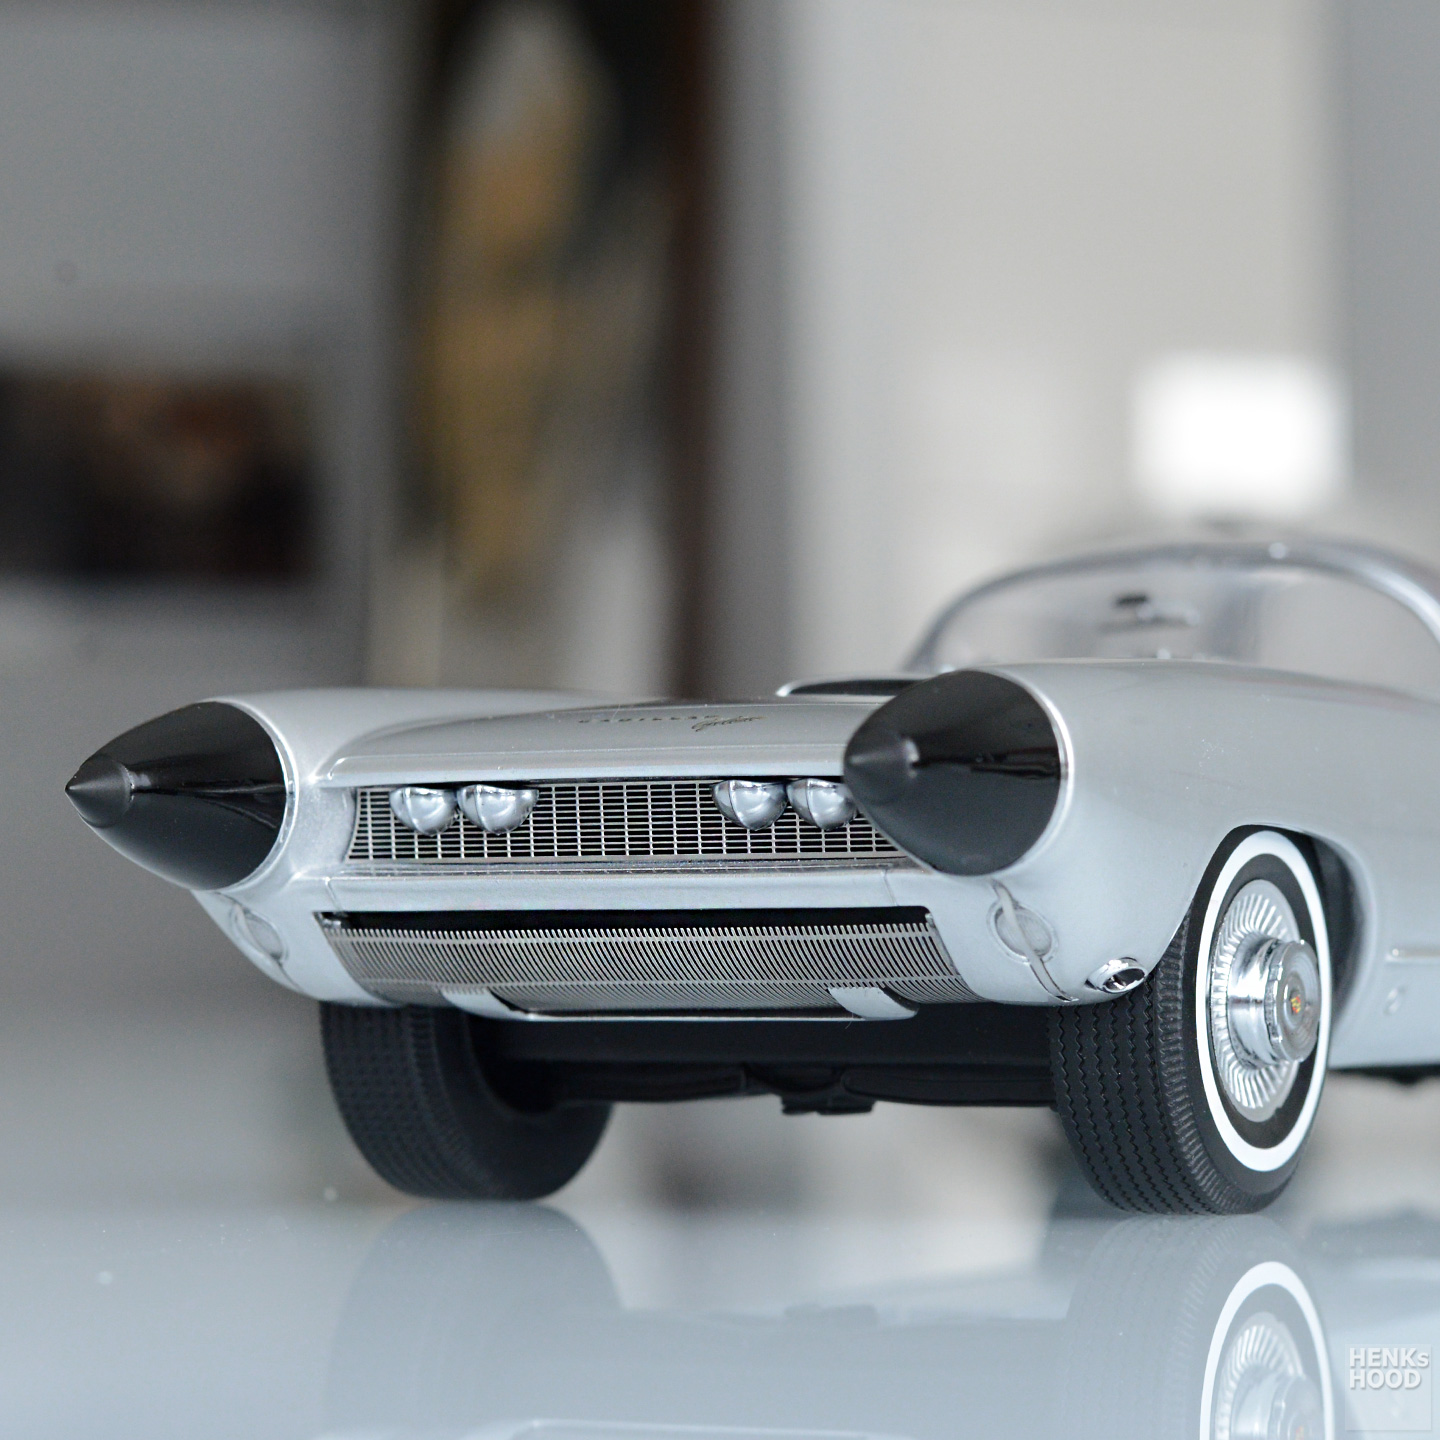 1959 Cadillac Cyclone XP 74 by Minichamps